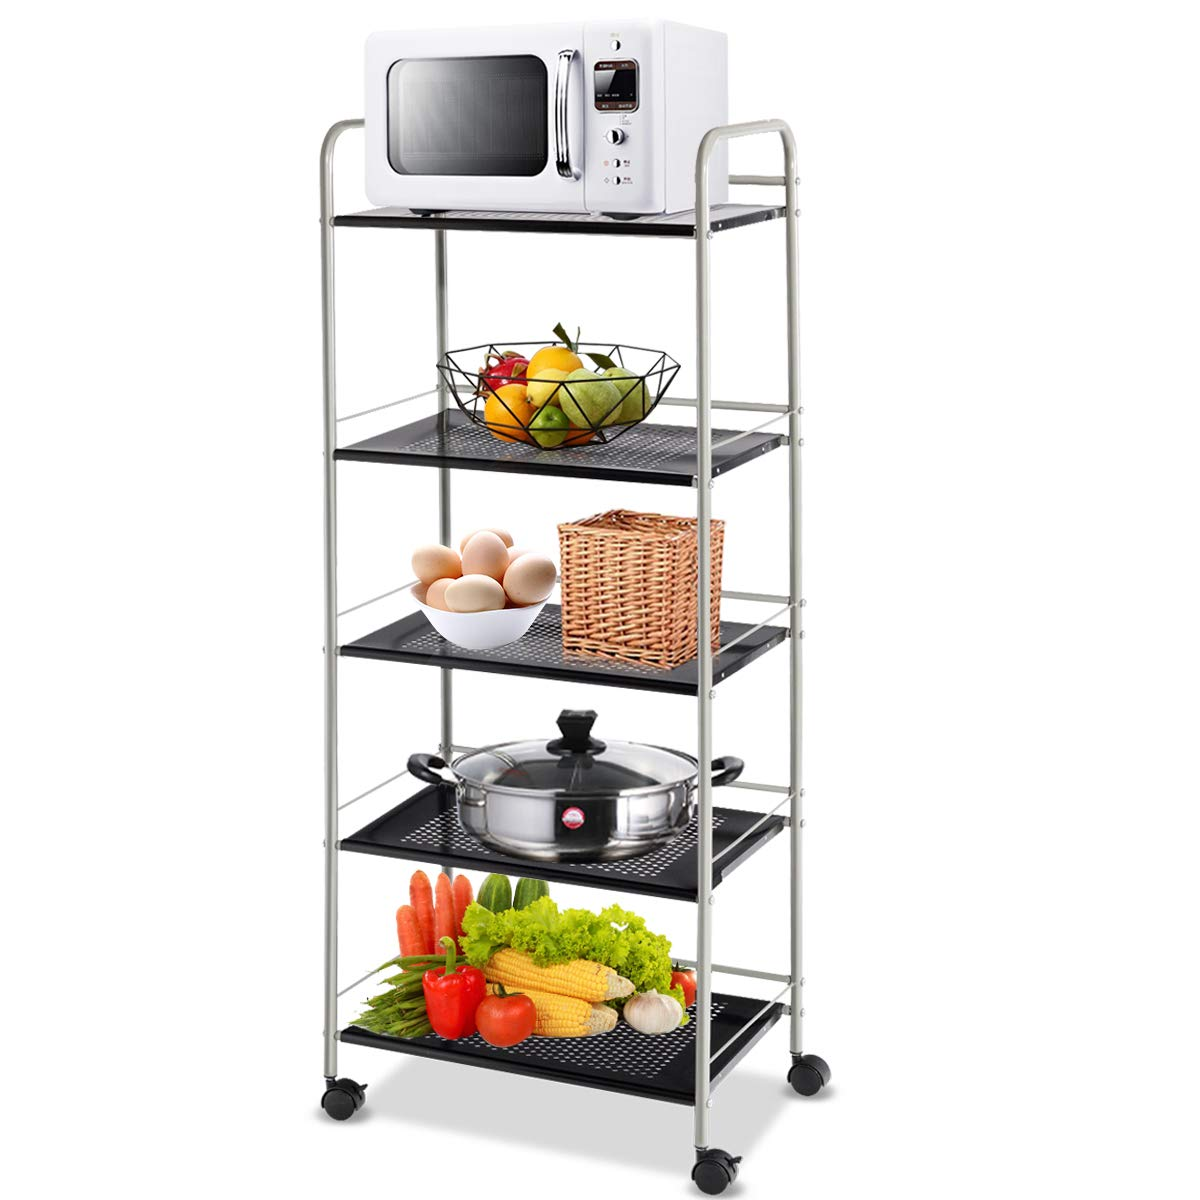 Giantex Kitchen Baker's Rack Trolley Cart Microwave Rack 5-Tier Rolling Utility Cart Steel Storage Shelf Rack with Lockable Casters, for Kitchen Warehouse Garage Salon Bathroom Shelving Organizer